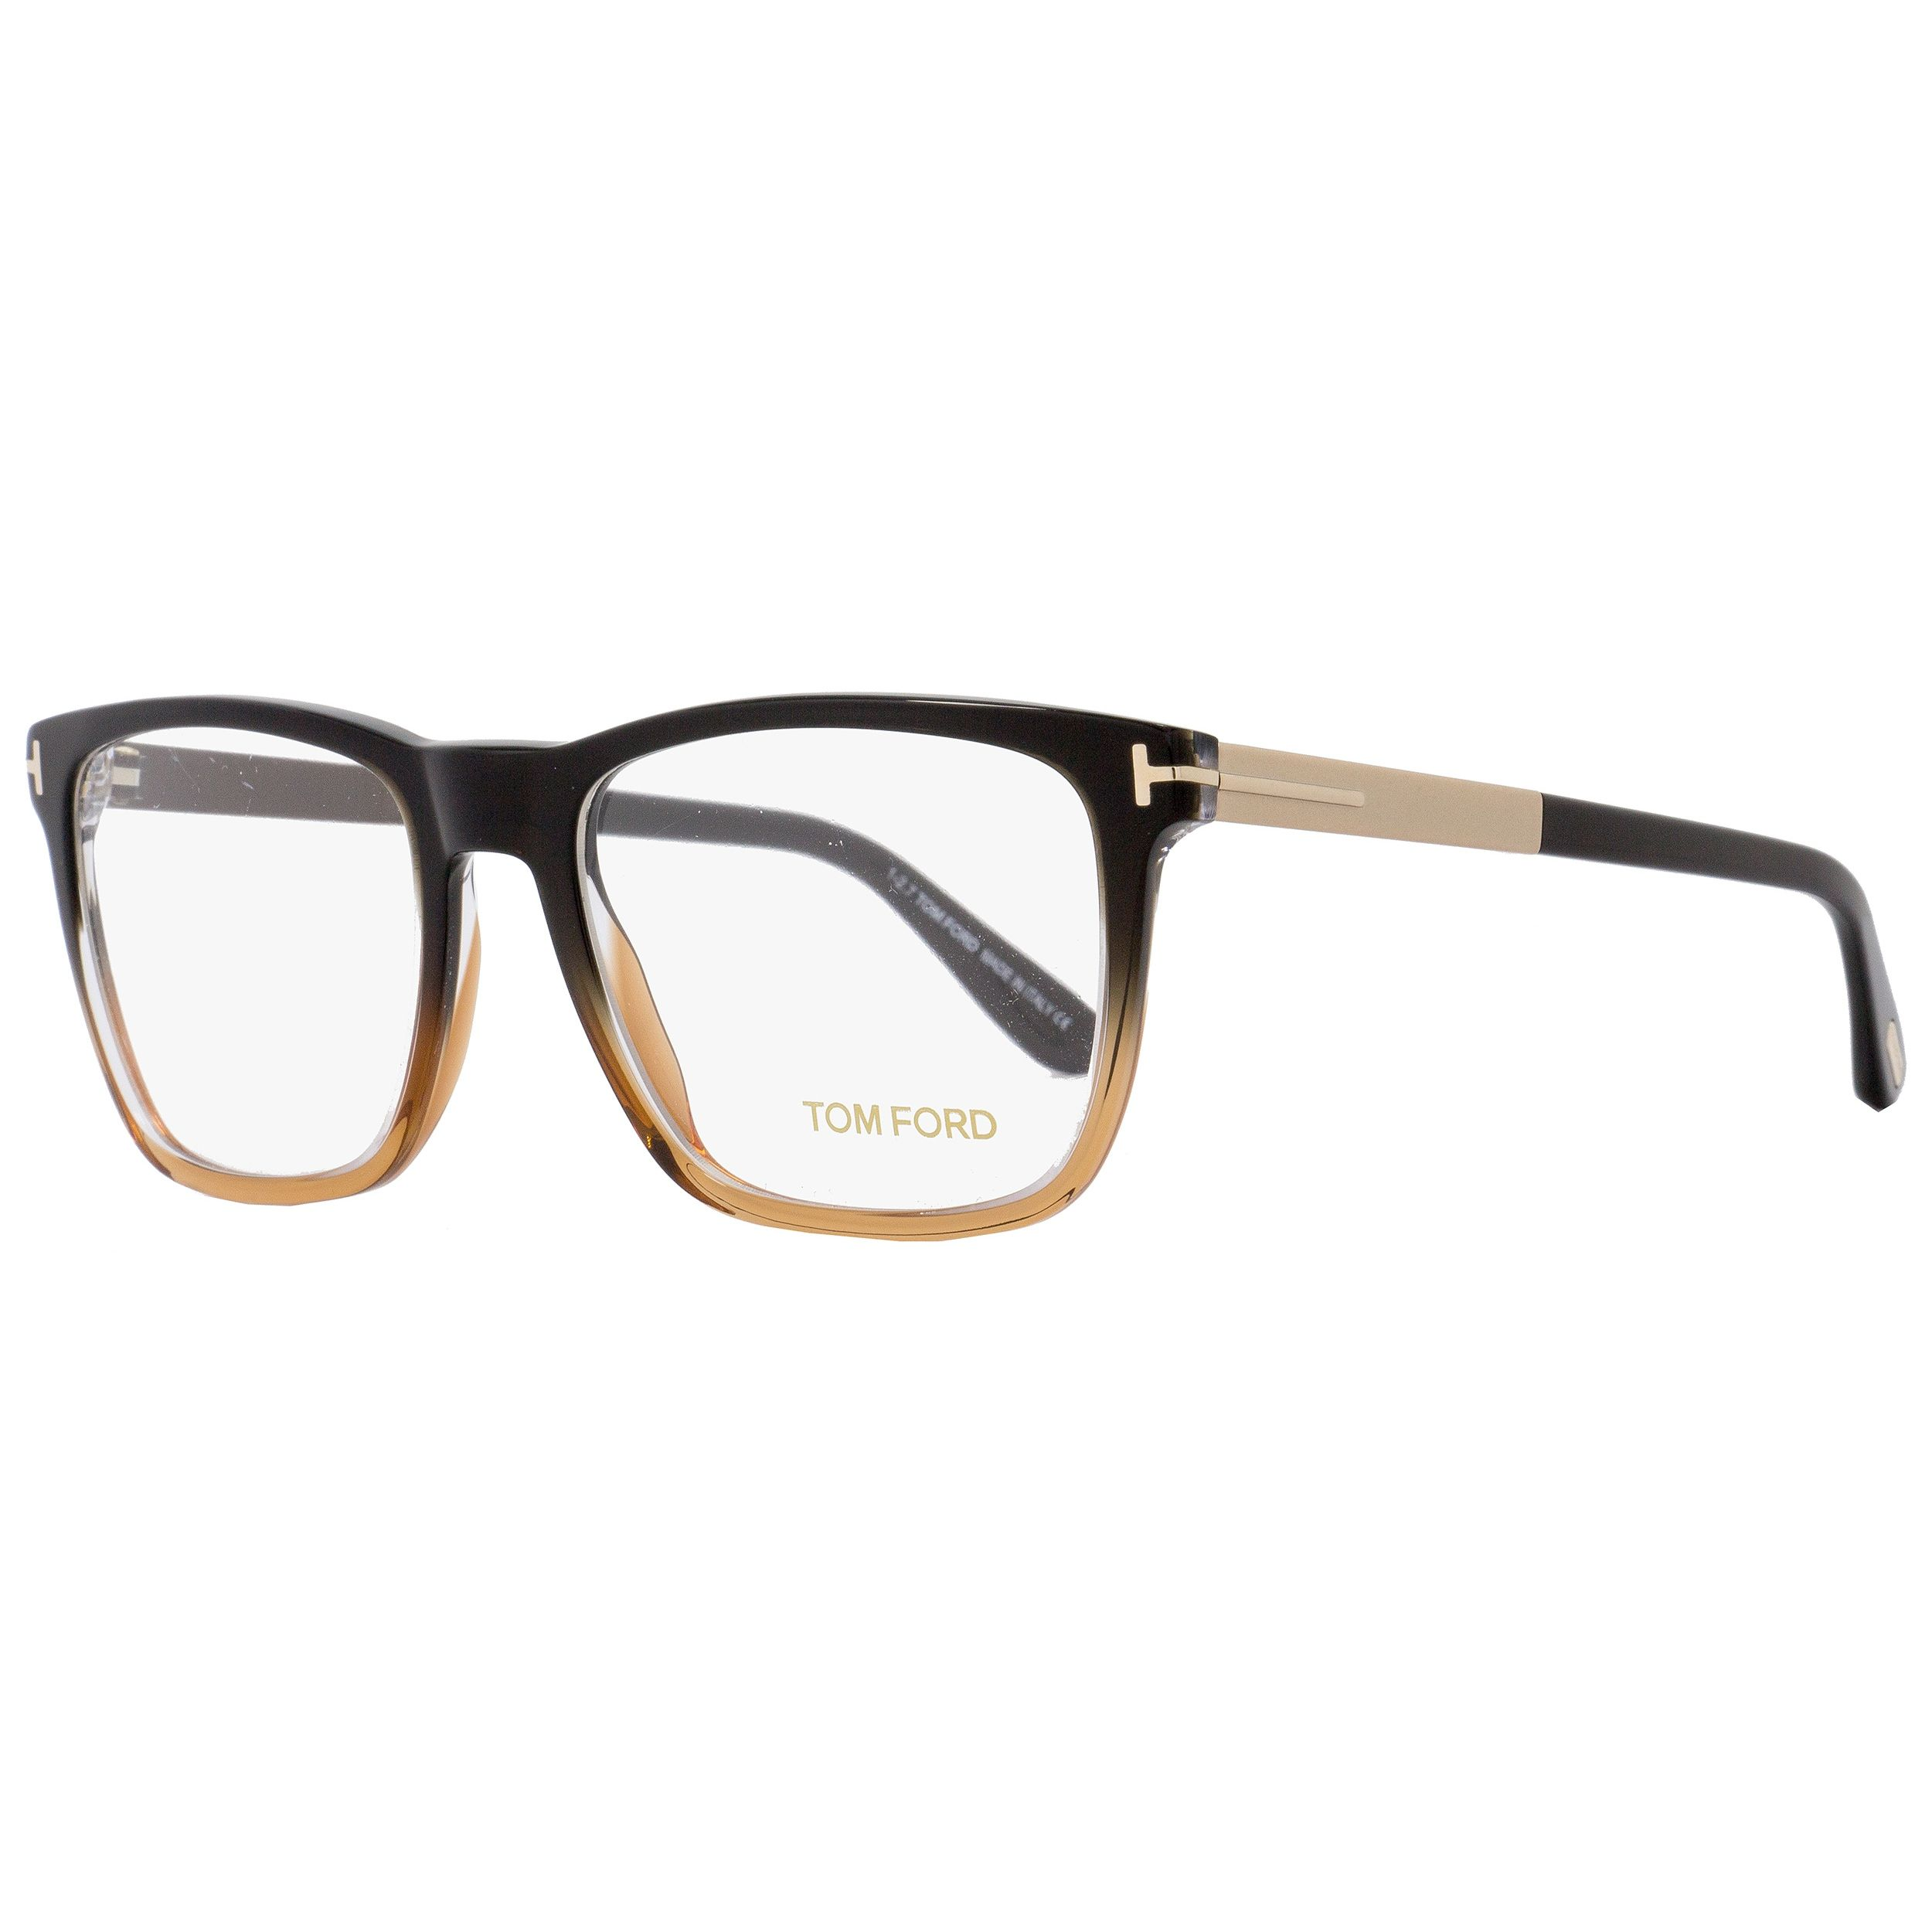 1c866f23cb29 Tom Ford TF5351 050 Unisex Black Brown Gold 54 mm Eyeglasses in 2019 ...